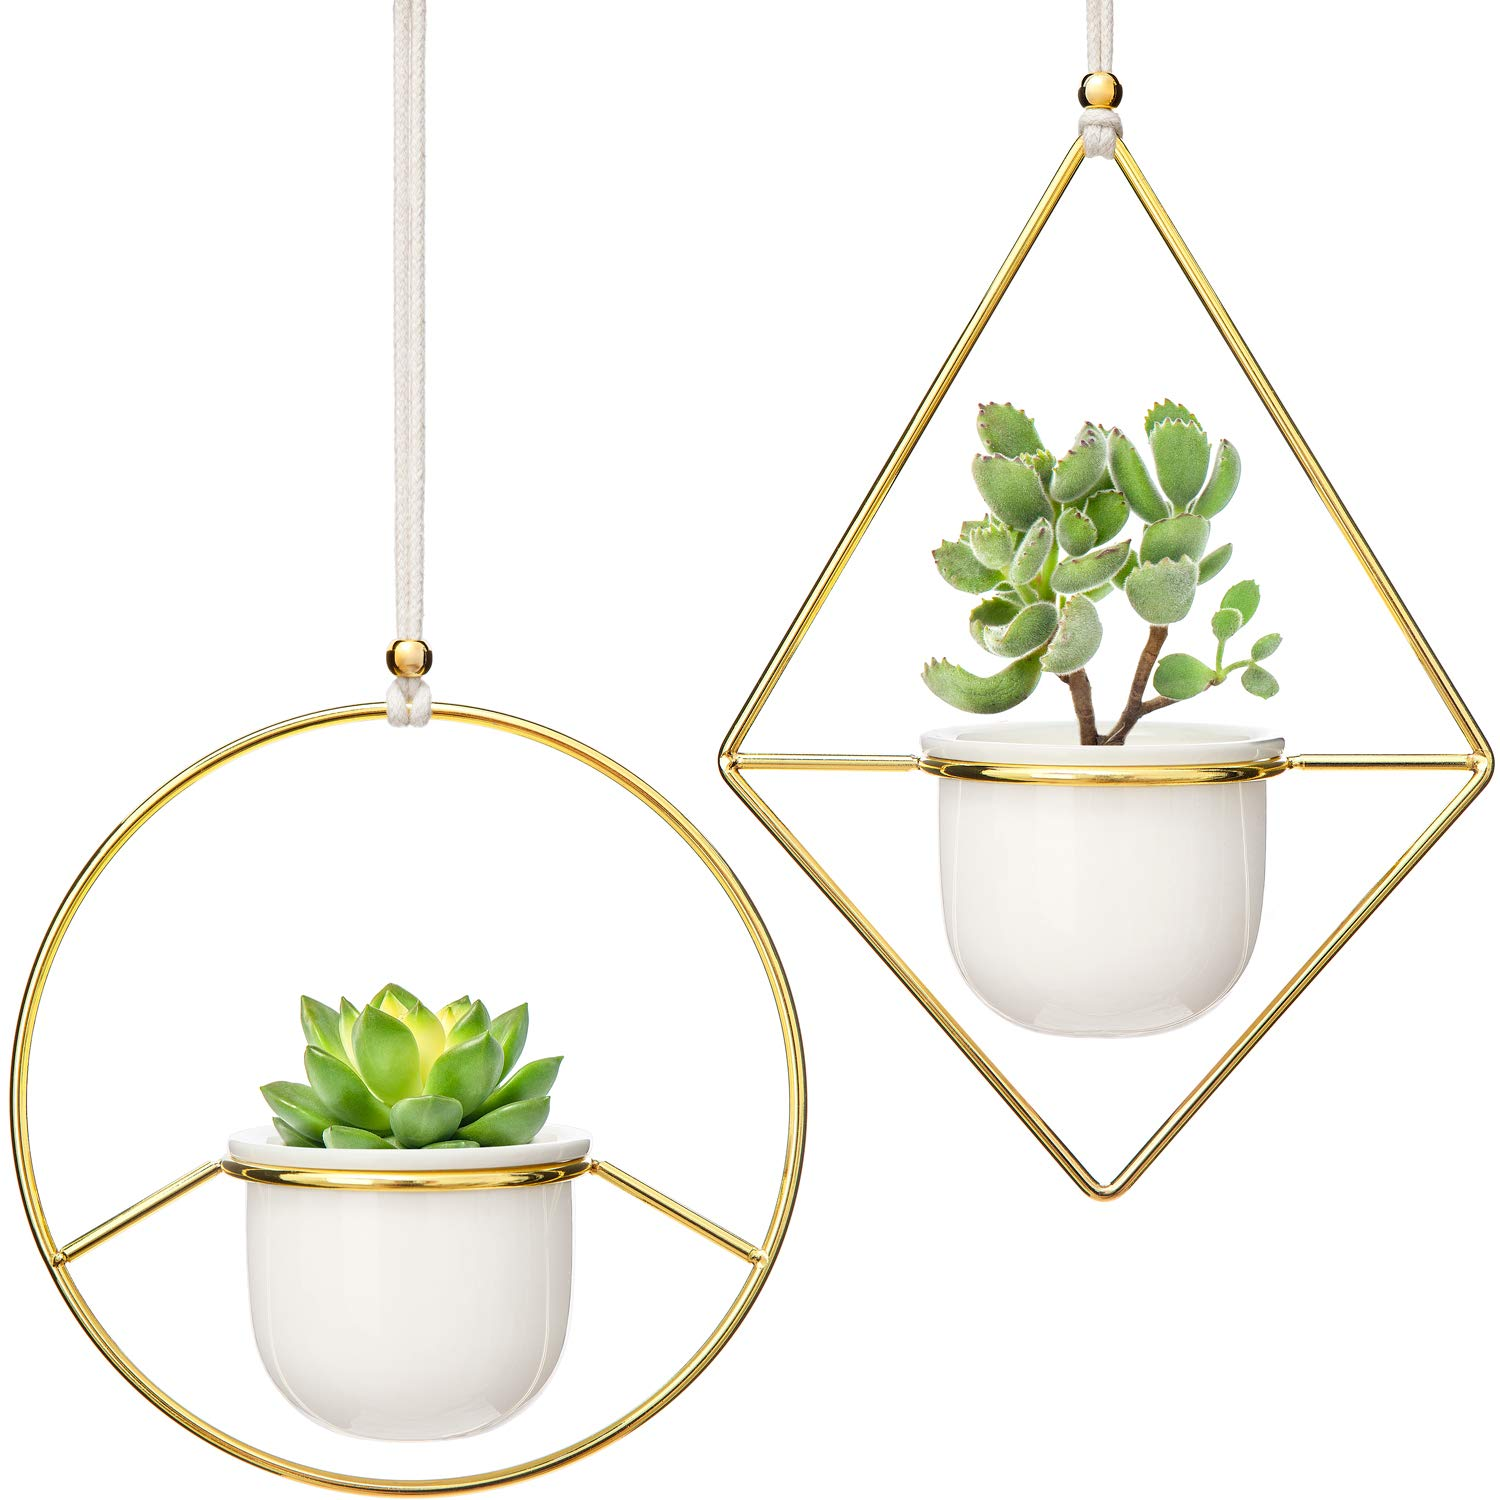 """Mkono 2 Pcs Mini Hanging Planter Vase Set, 3.5"""" White Ceramic Plant Pot with Gold Metal Geometric Plant Hanger Modern Window Ceiling Planters for Small Succulent Cactus Herb Air Plant (Pots Included)"""